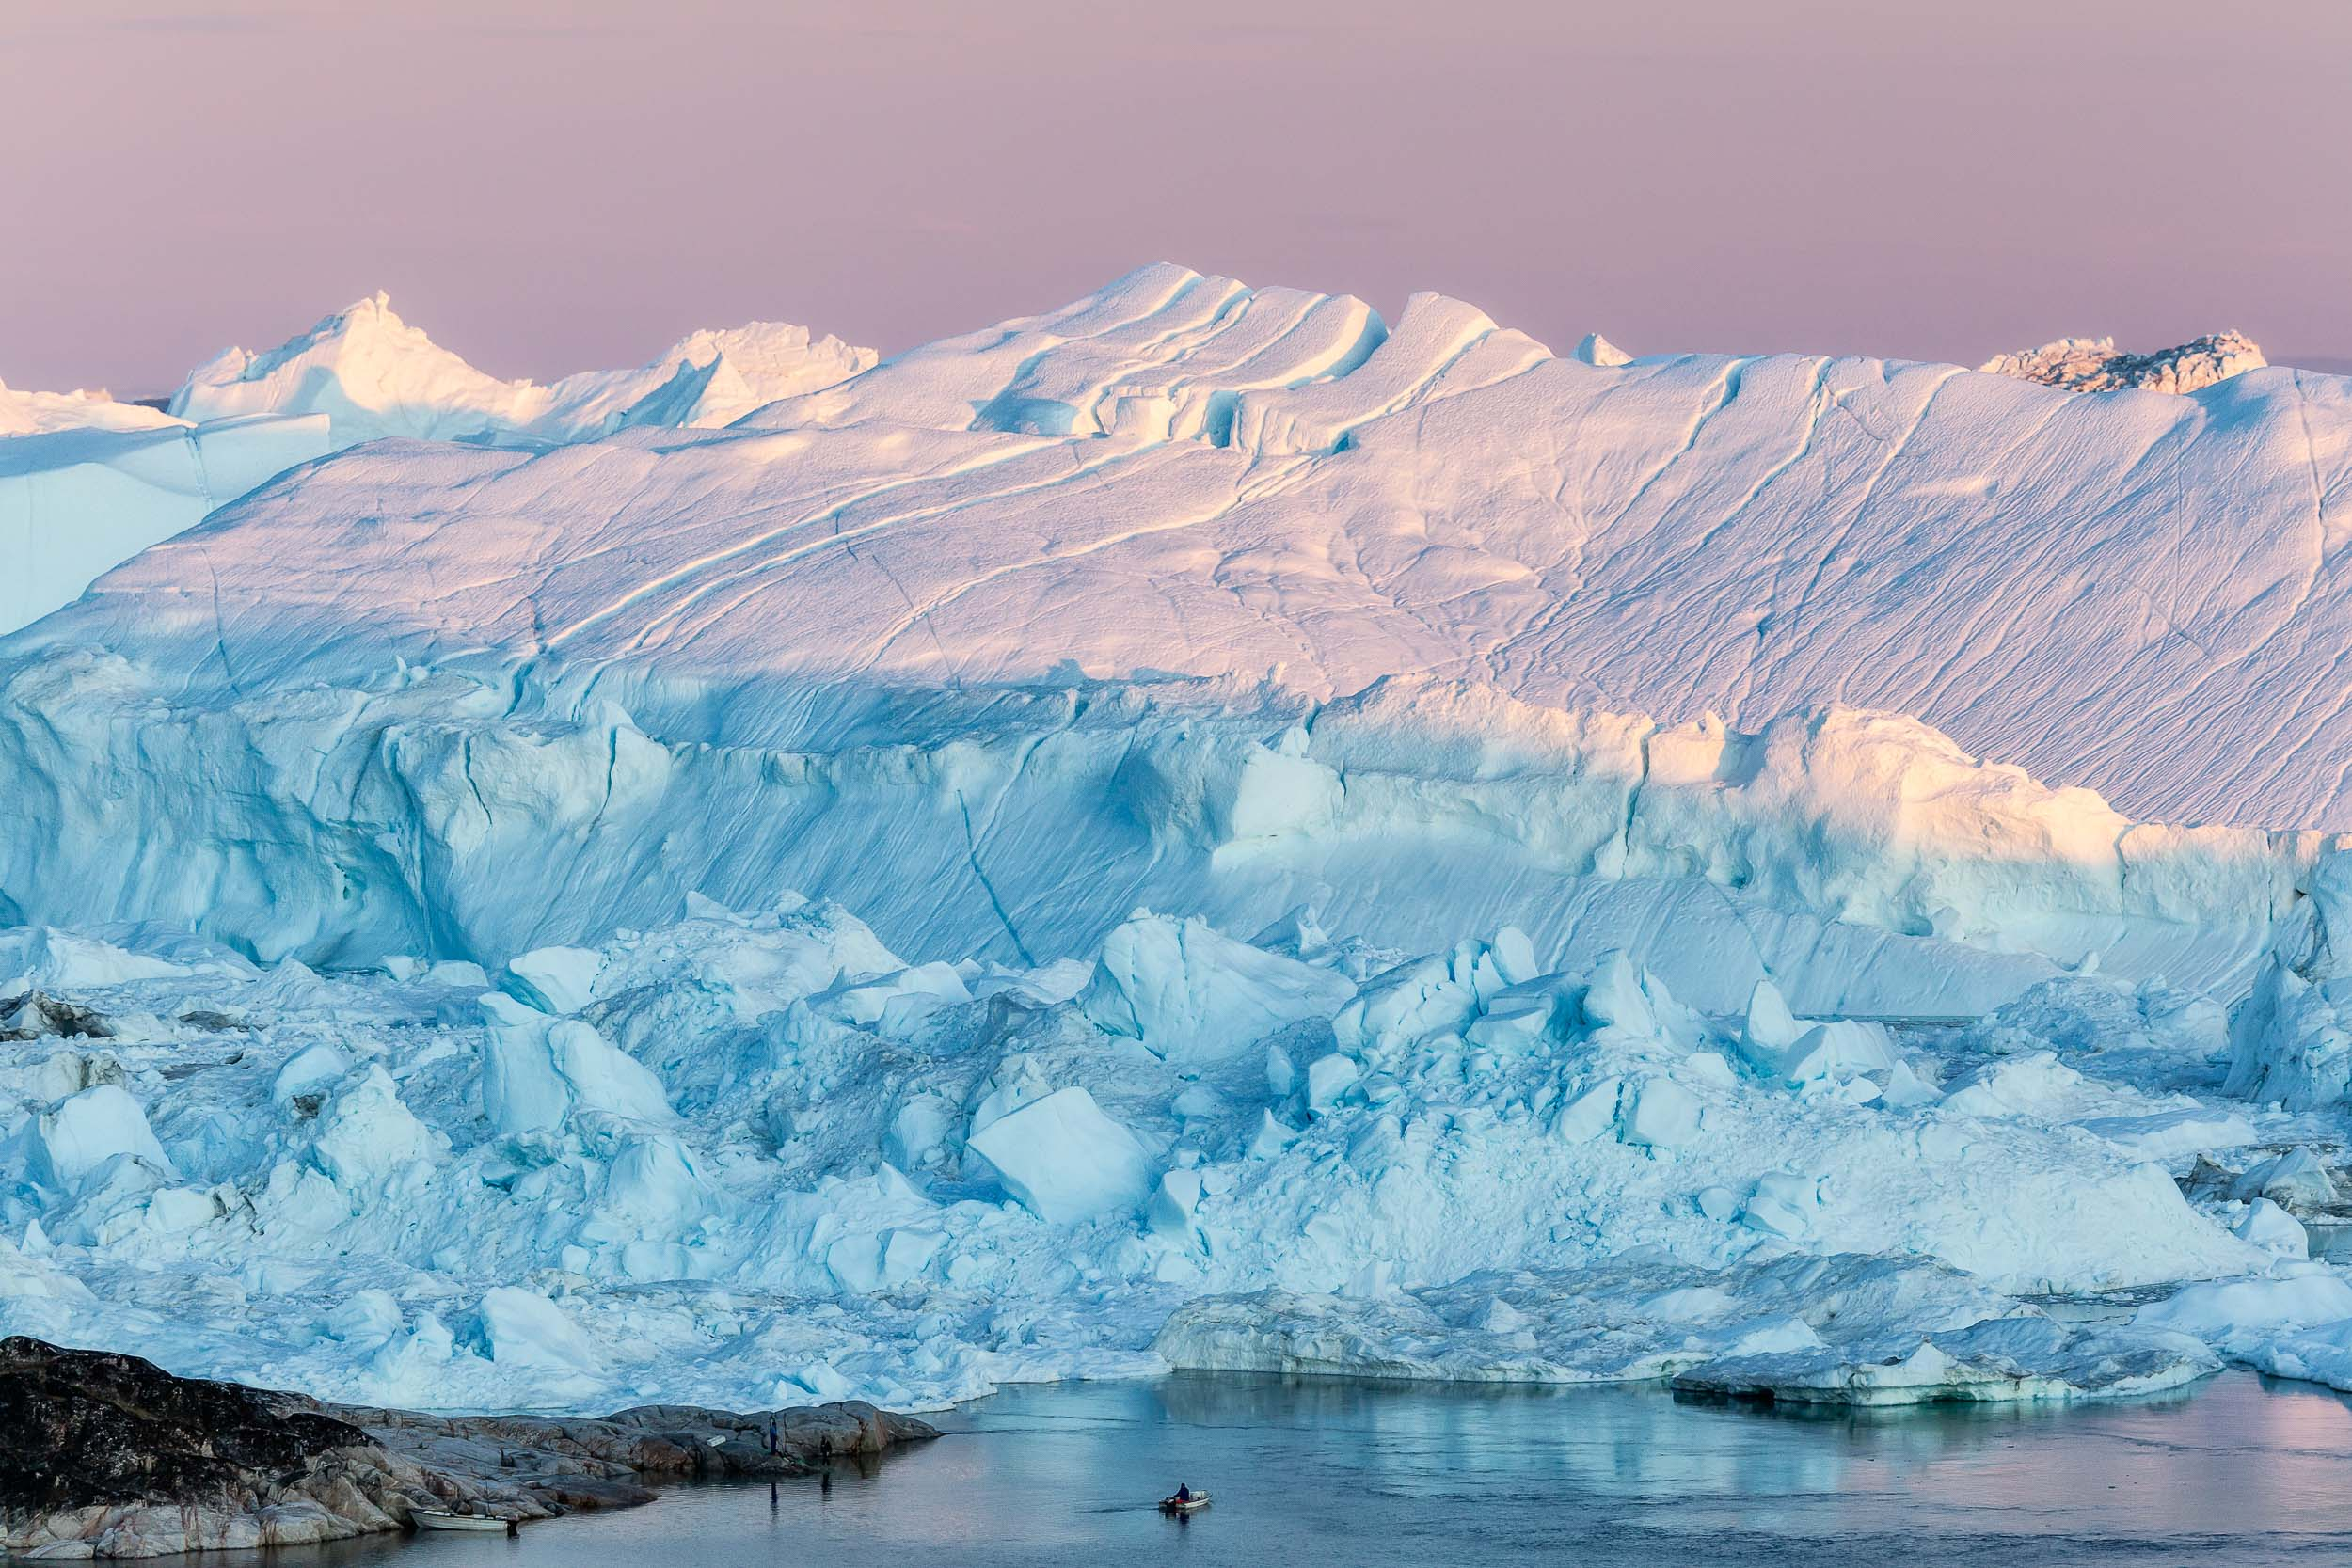 A    fisherman    and his boat is dwarfed by    massive icebergs    on the edge of    Disko Bay    near the town of    Ilulissat    in    Greenland   .